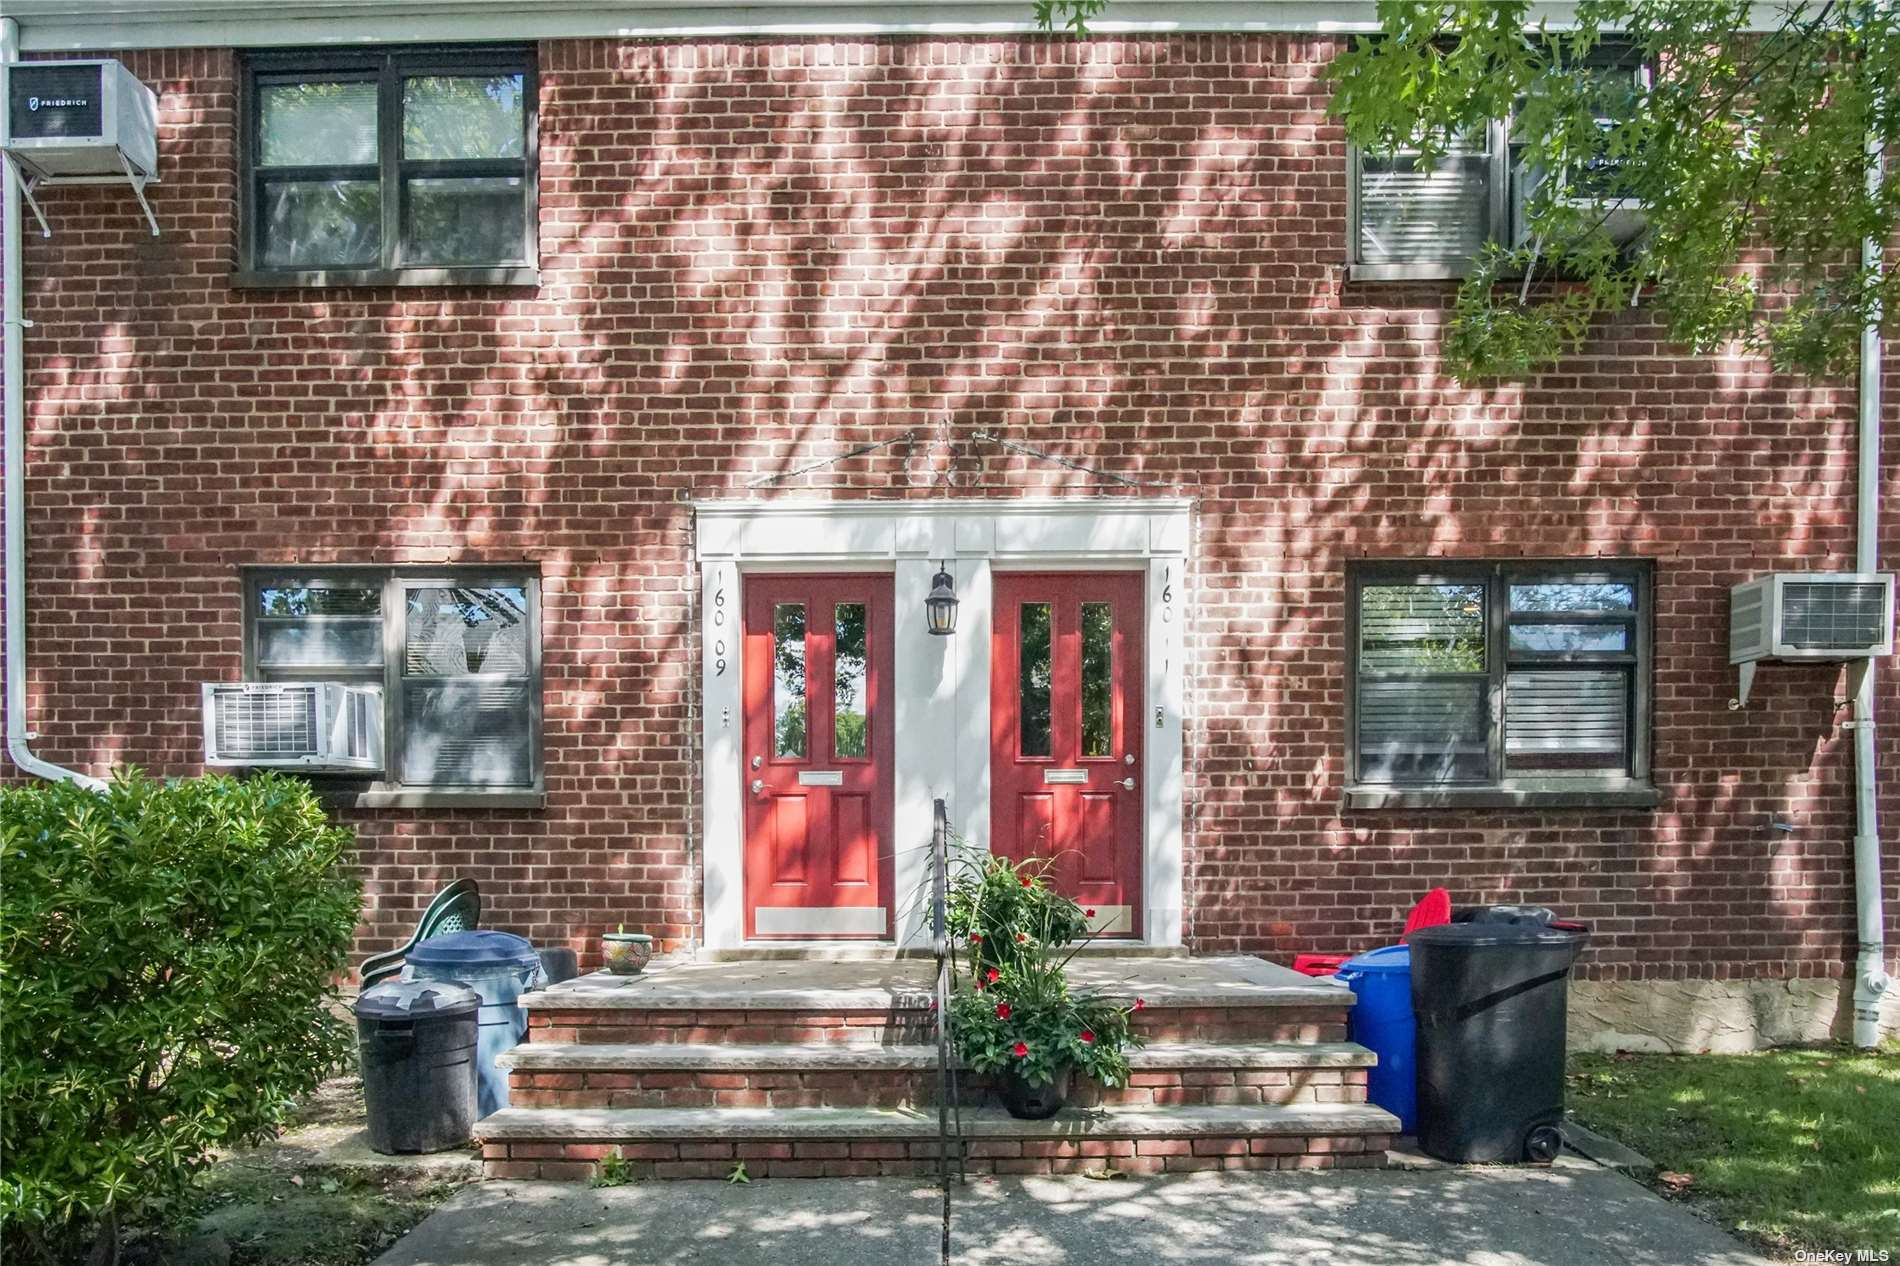 Lovingly maintained by longtime owner, this unit is on a quiet tree-lined street, close to buses, schools, and shops. Walk to Francis Lewis Boulevard and Utopia Parkway. Convenient lower unit with southern exposure, hardwood floors, and extra closets/storage space.